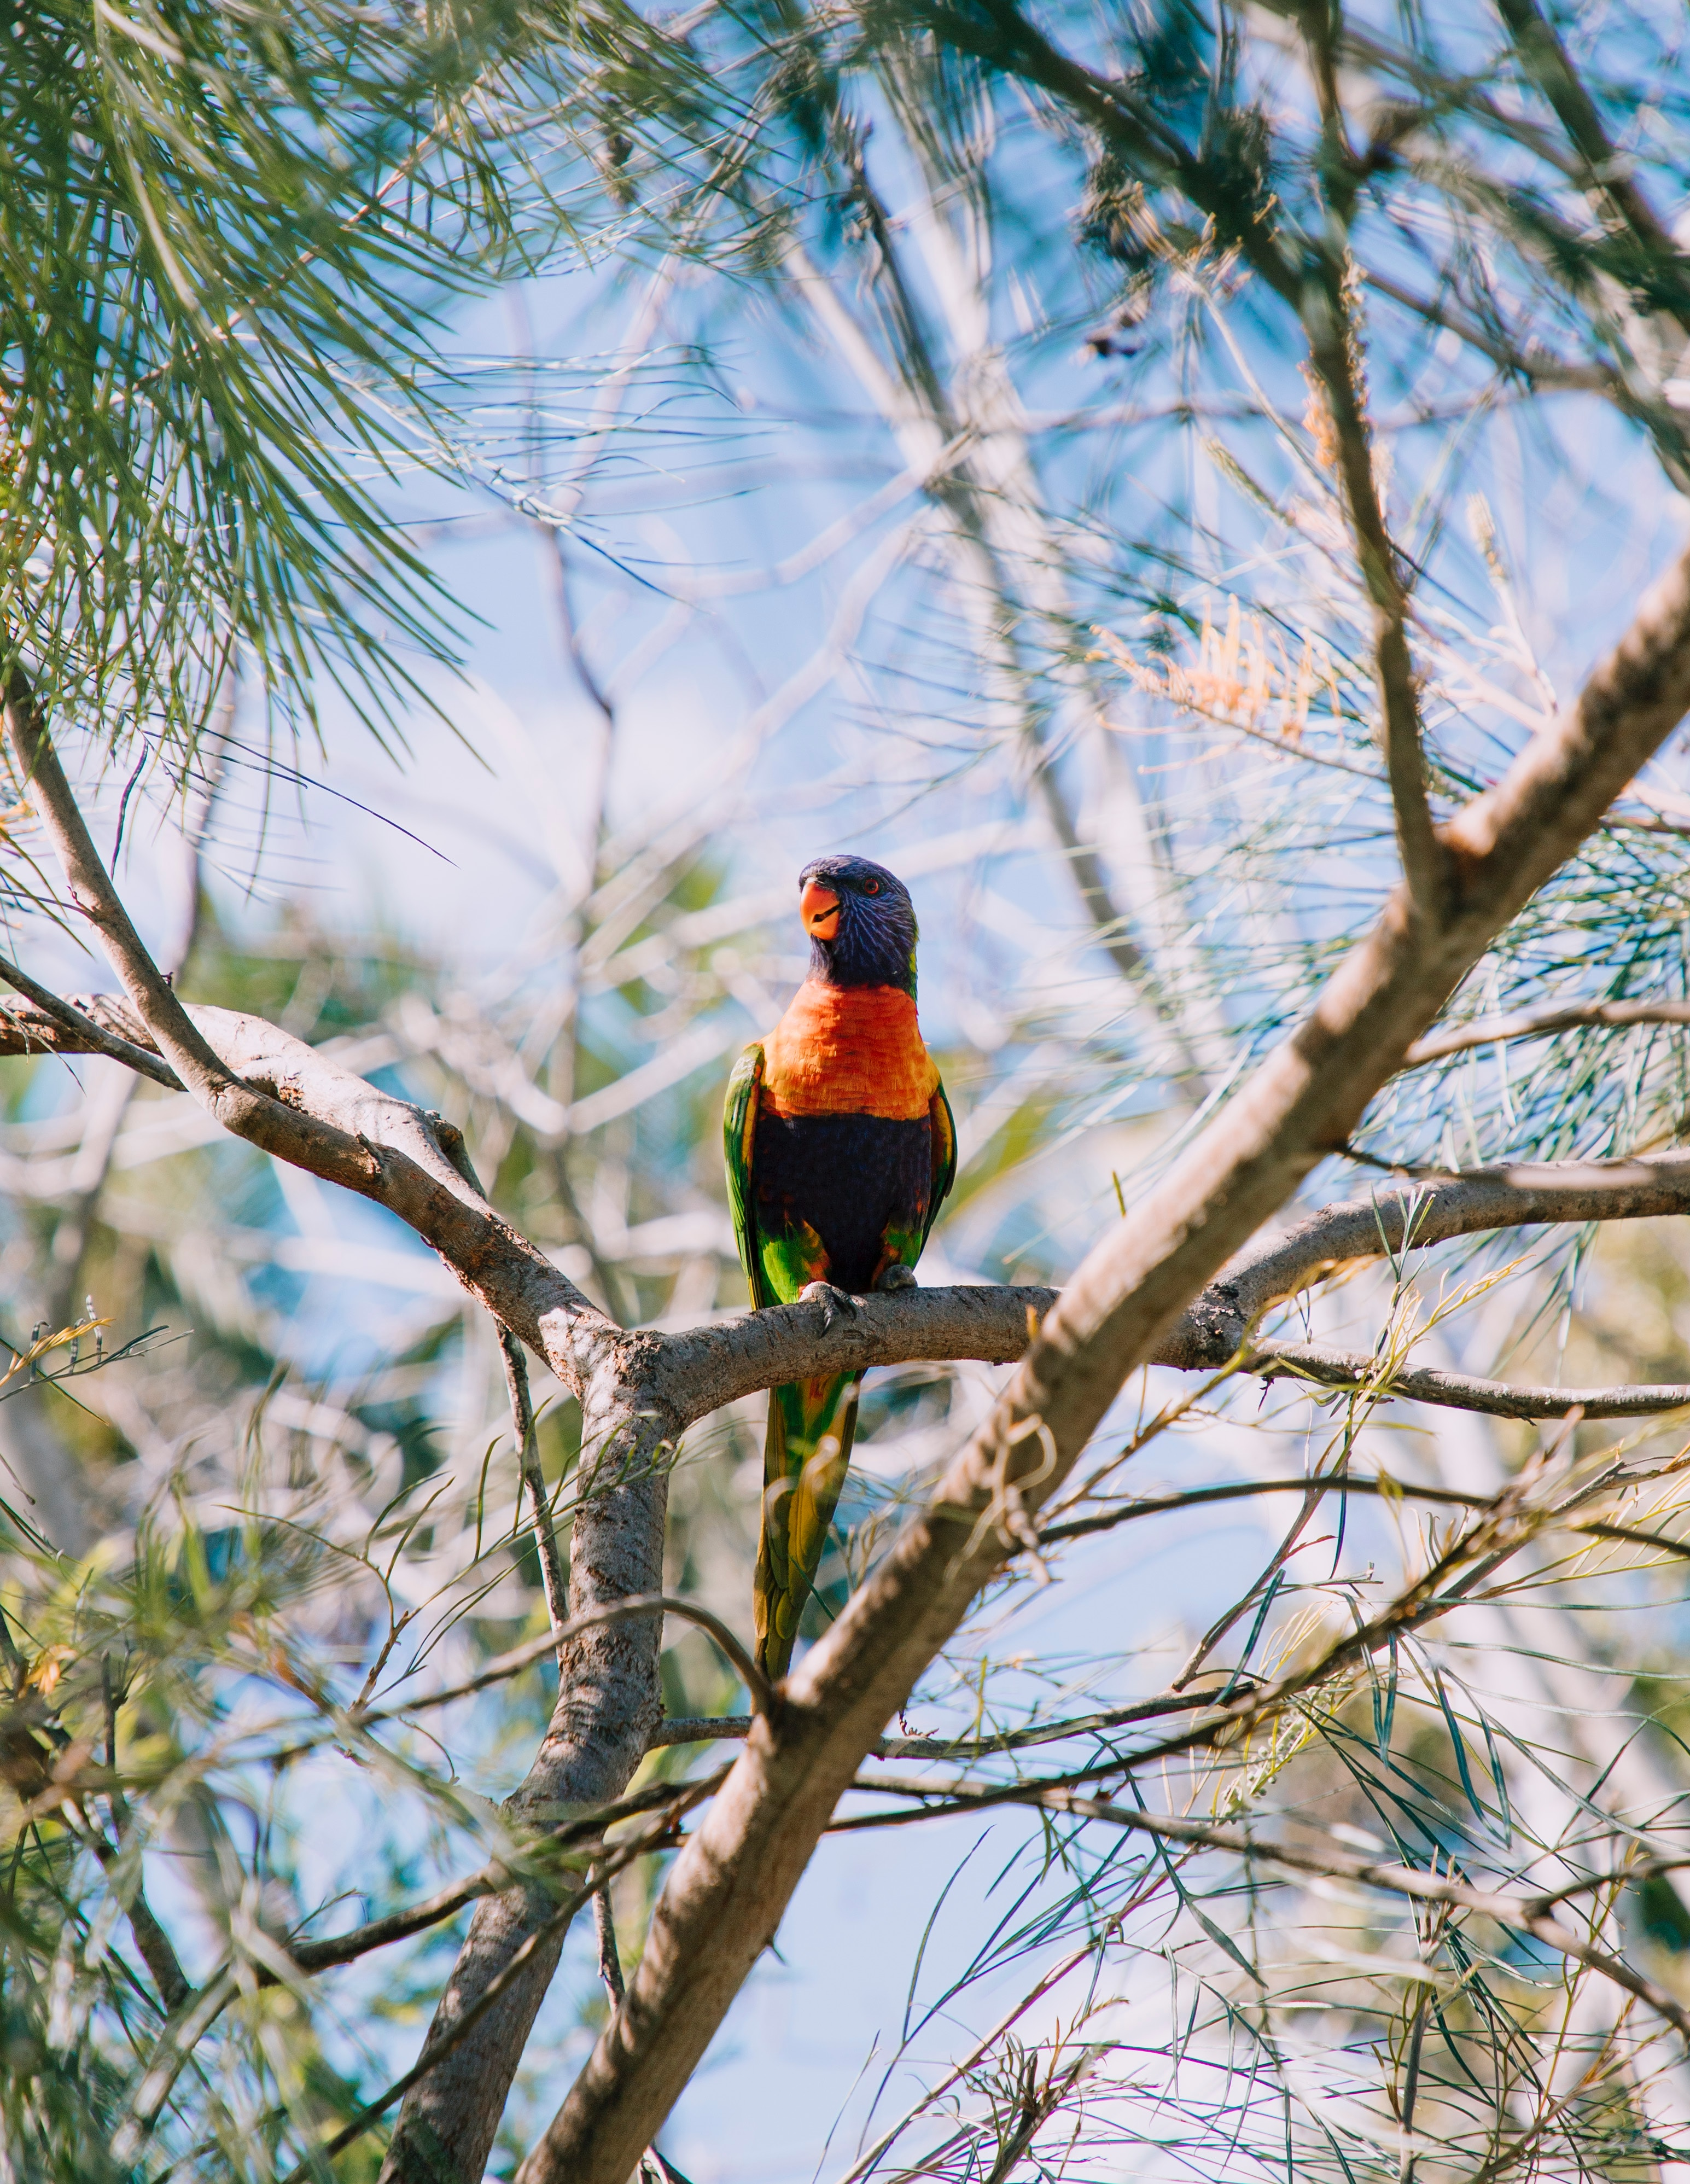 103601 download wallpaper Animals, Multicolor Lorikeet, Multi-Colored Loriket, Parrots, Bird, Multicolored, Motley, Wildlife screensavers and pictures for free